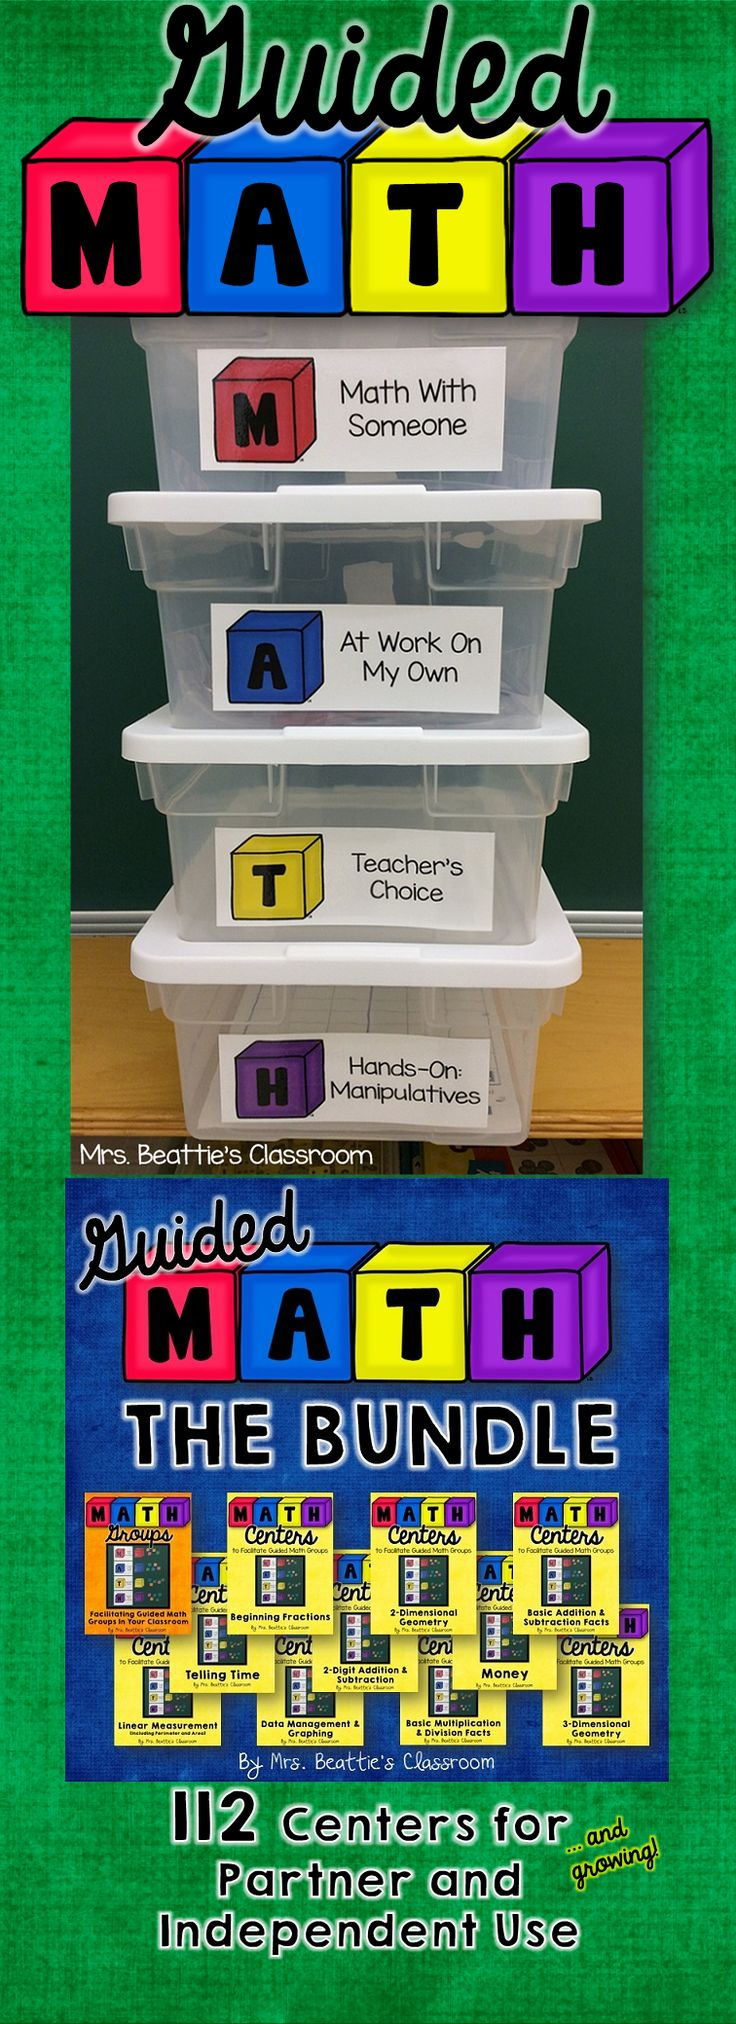 Using a Guided Math or Daily 5 Math approach in your classroom? Grab all current AND future Guided Math resources from Mrs. Beattie's Classroom in one low-cost bundle!! This won't ever be available for less! Click to check out the great reviews!